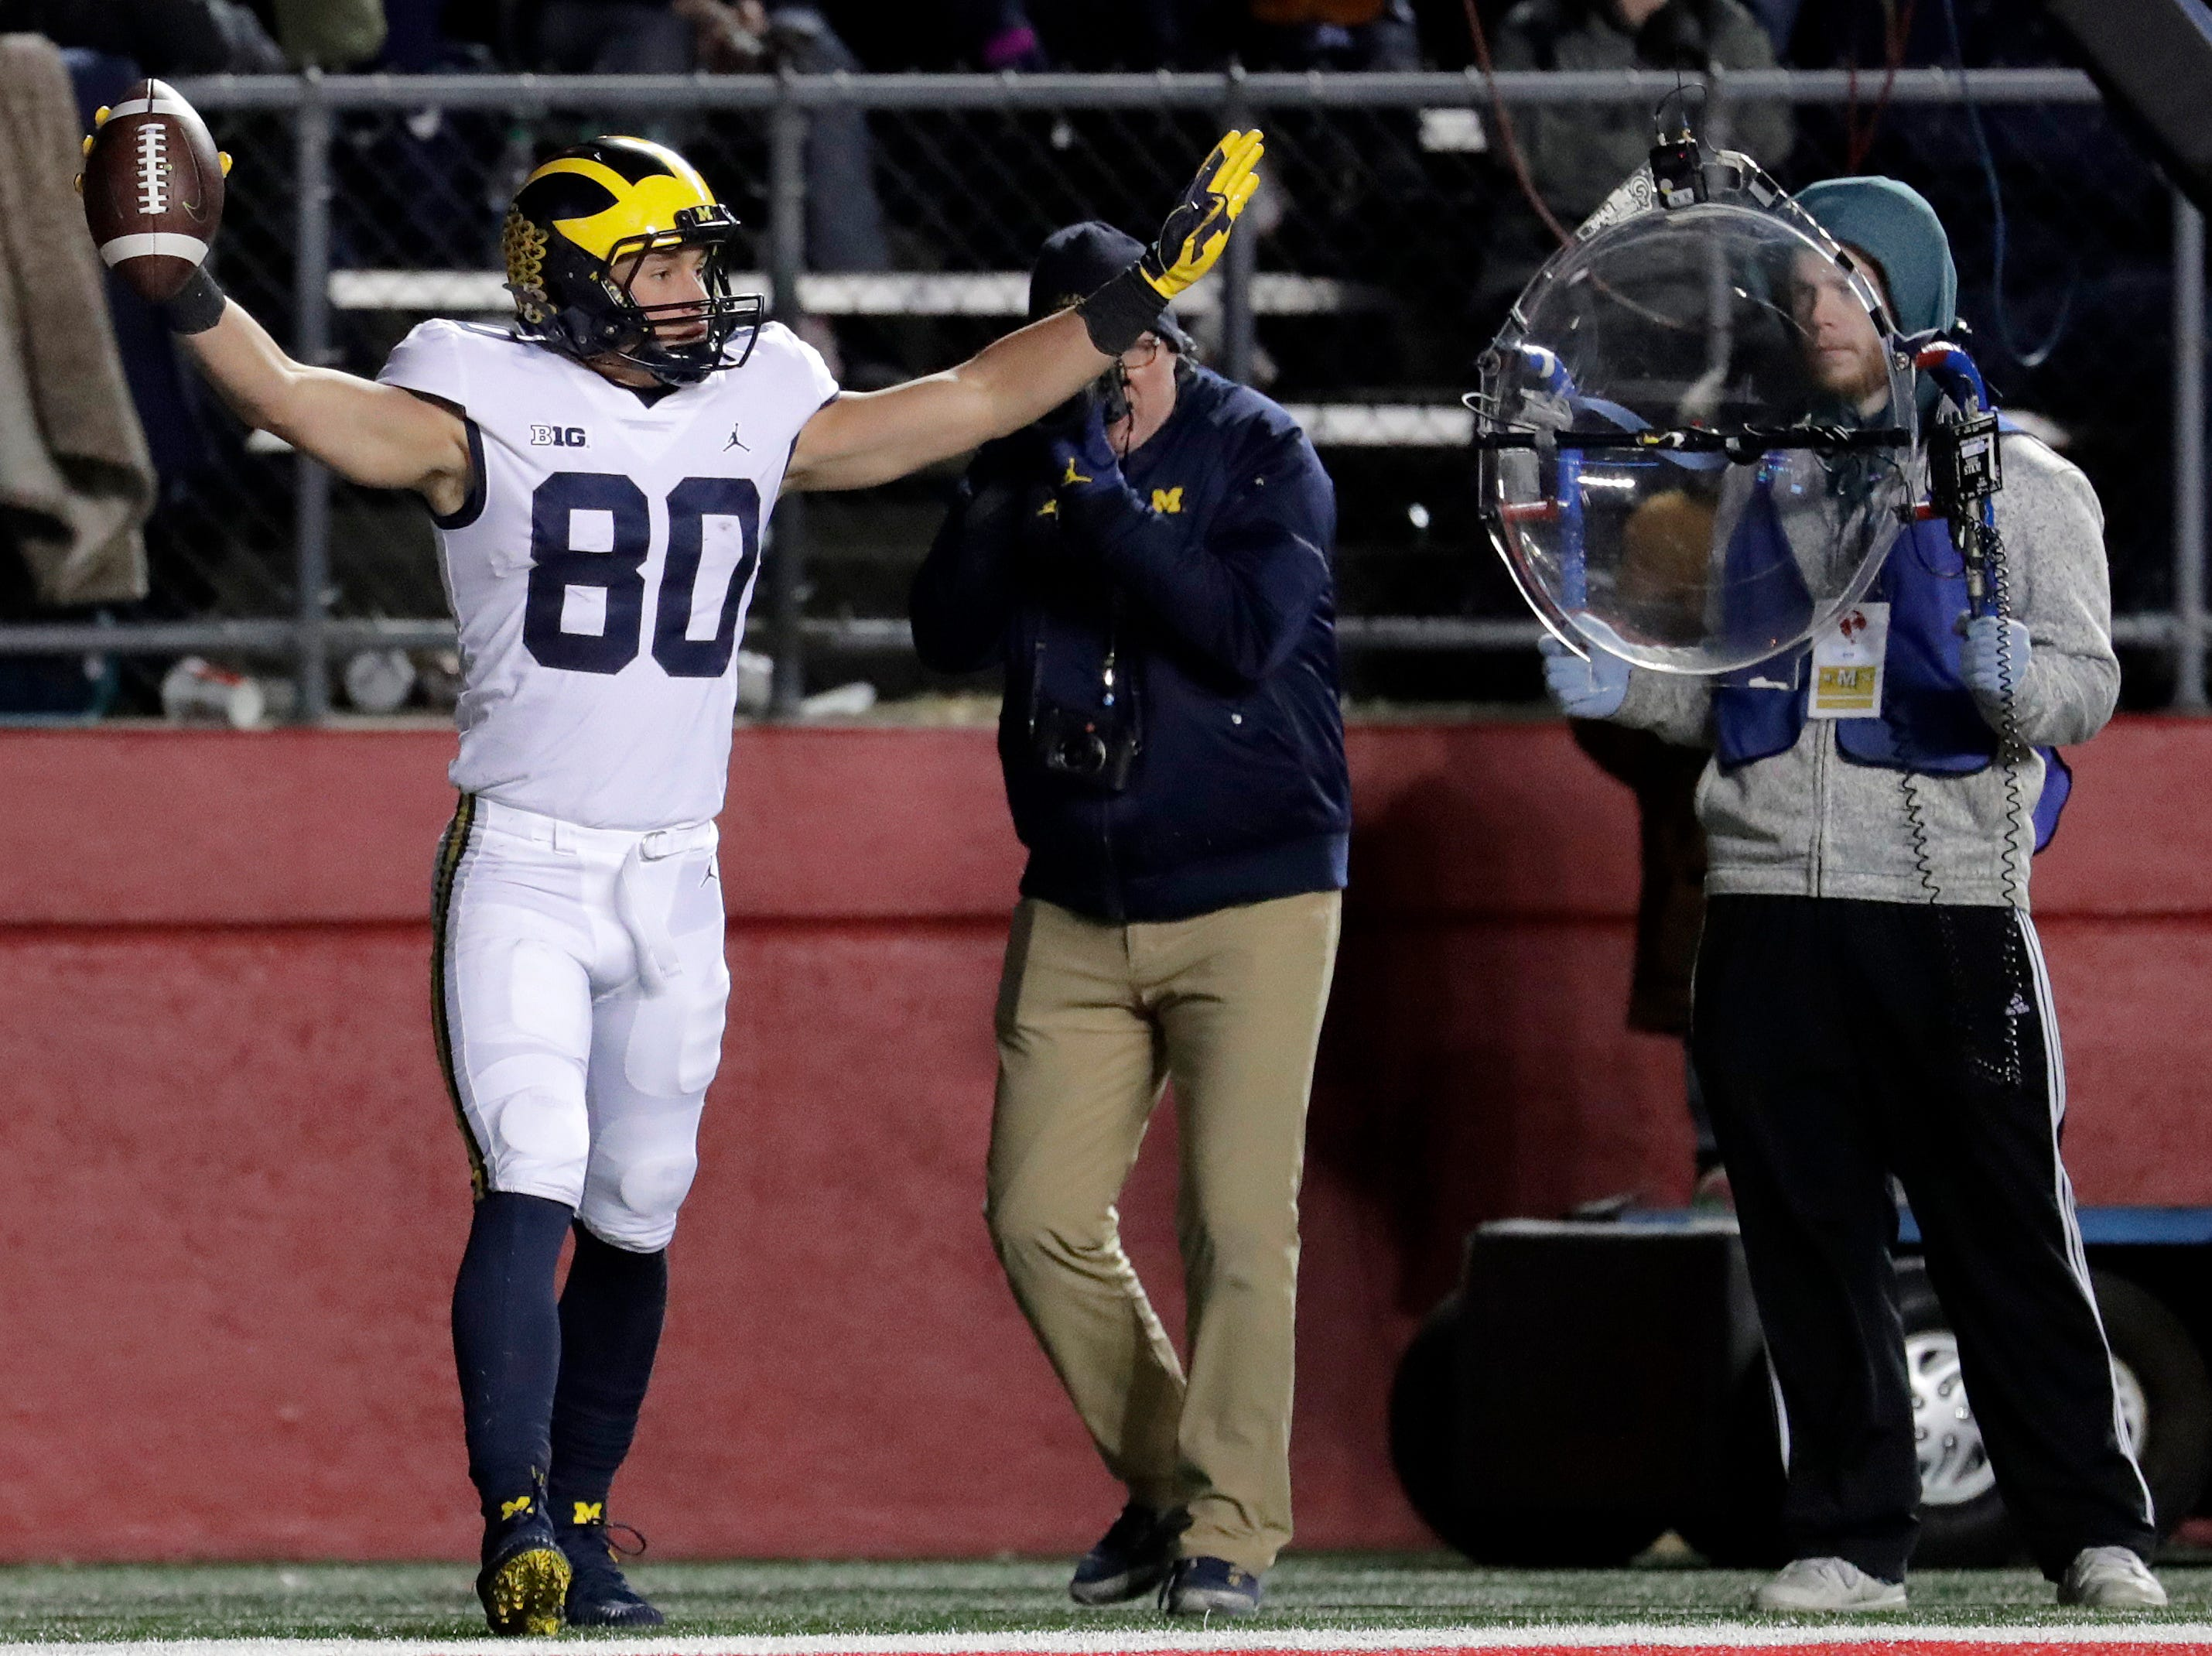 Michigan wide receiver Oliver Martin celebrates his touchdown on a pass from quarterback Shea Patterson.